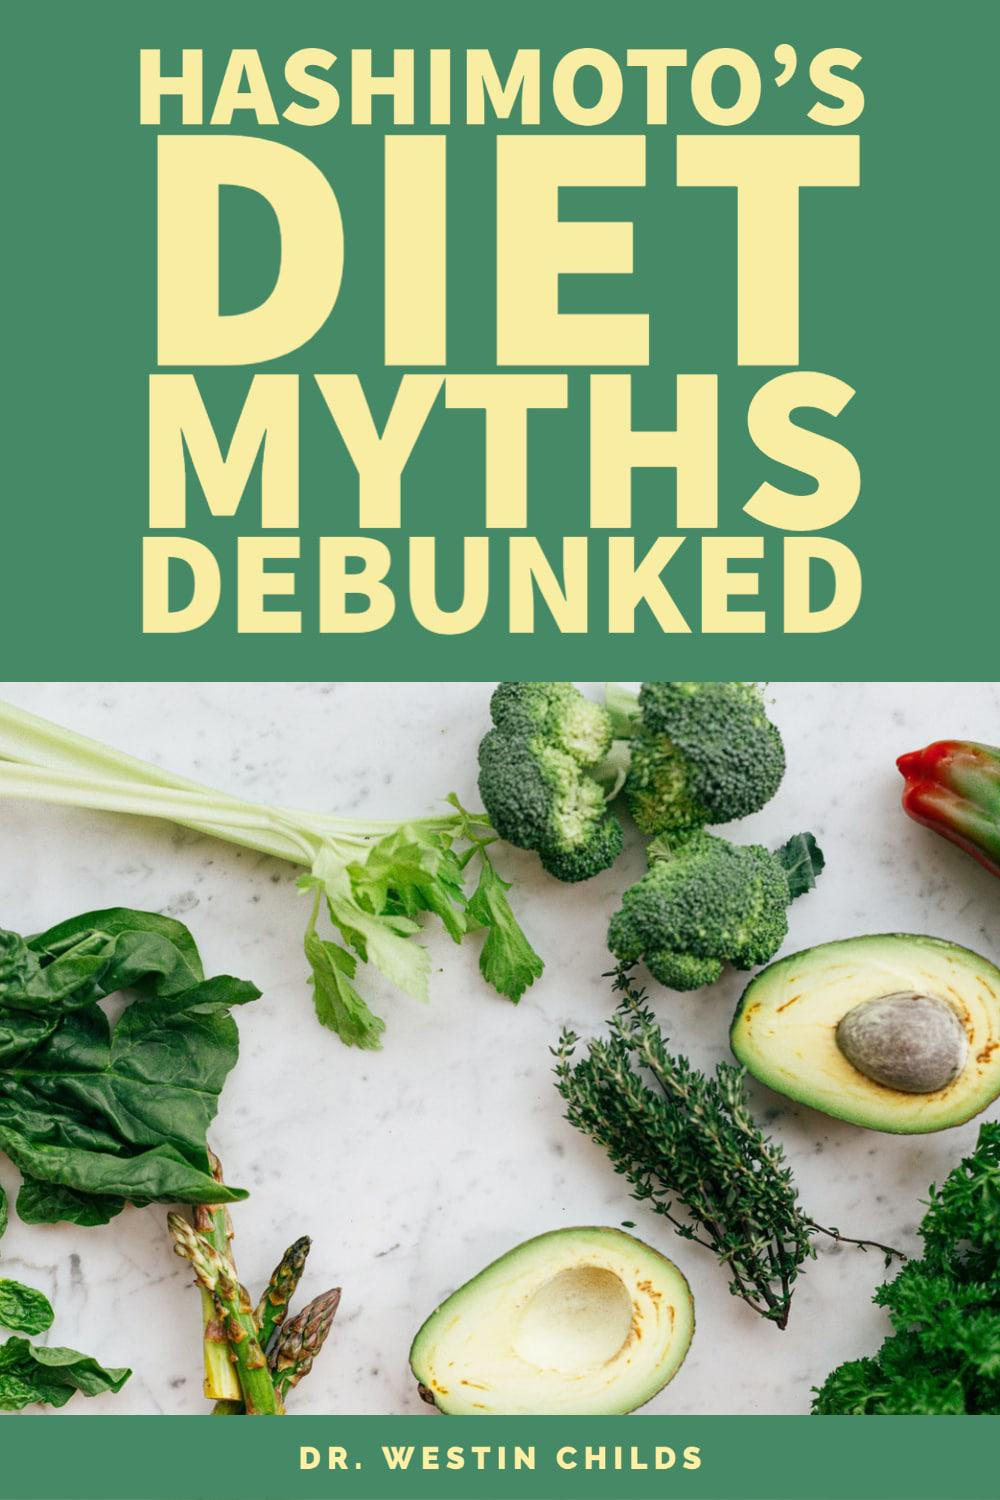 6 hashimoto's diet myths you should know